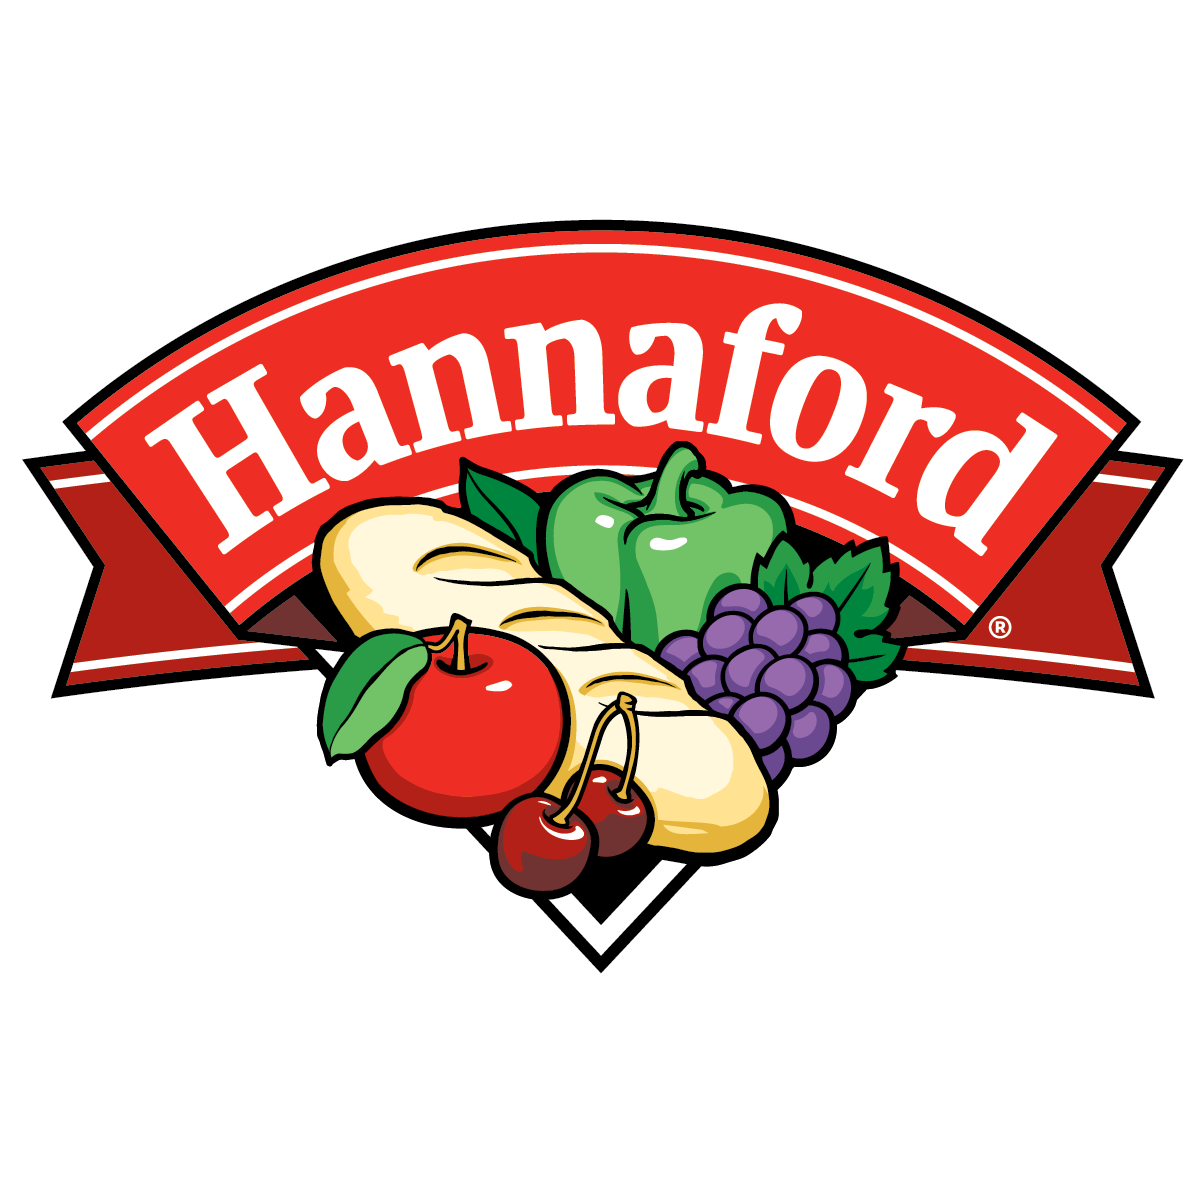 Hannaford Pharmacy - Bradford, VT - Pharmacist